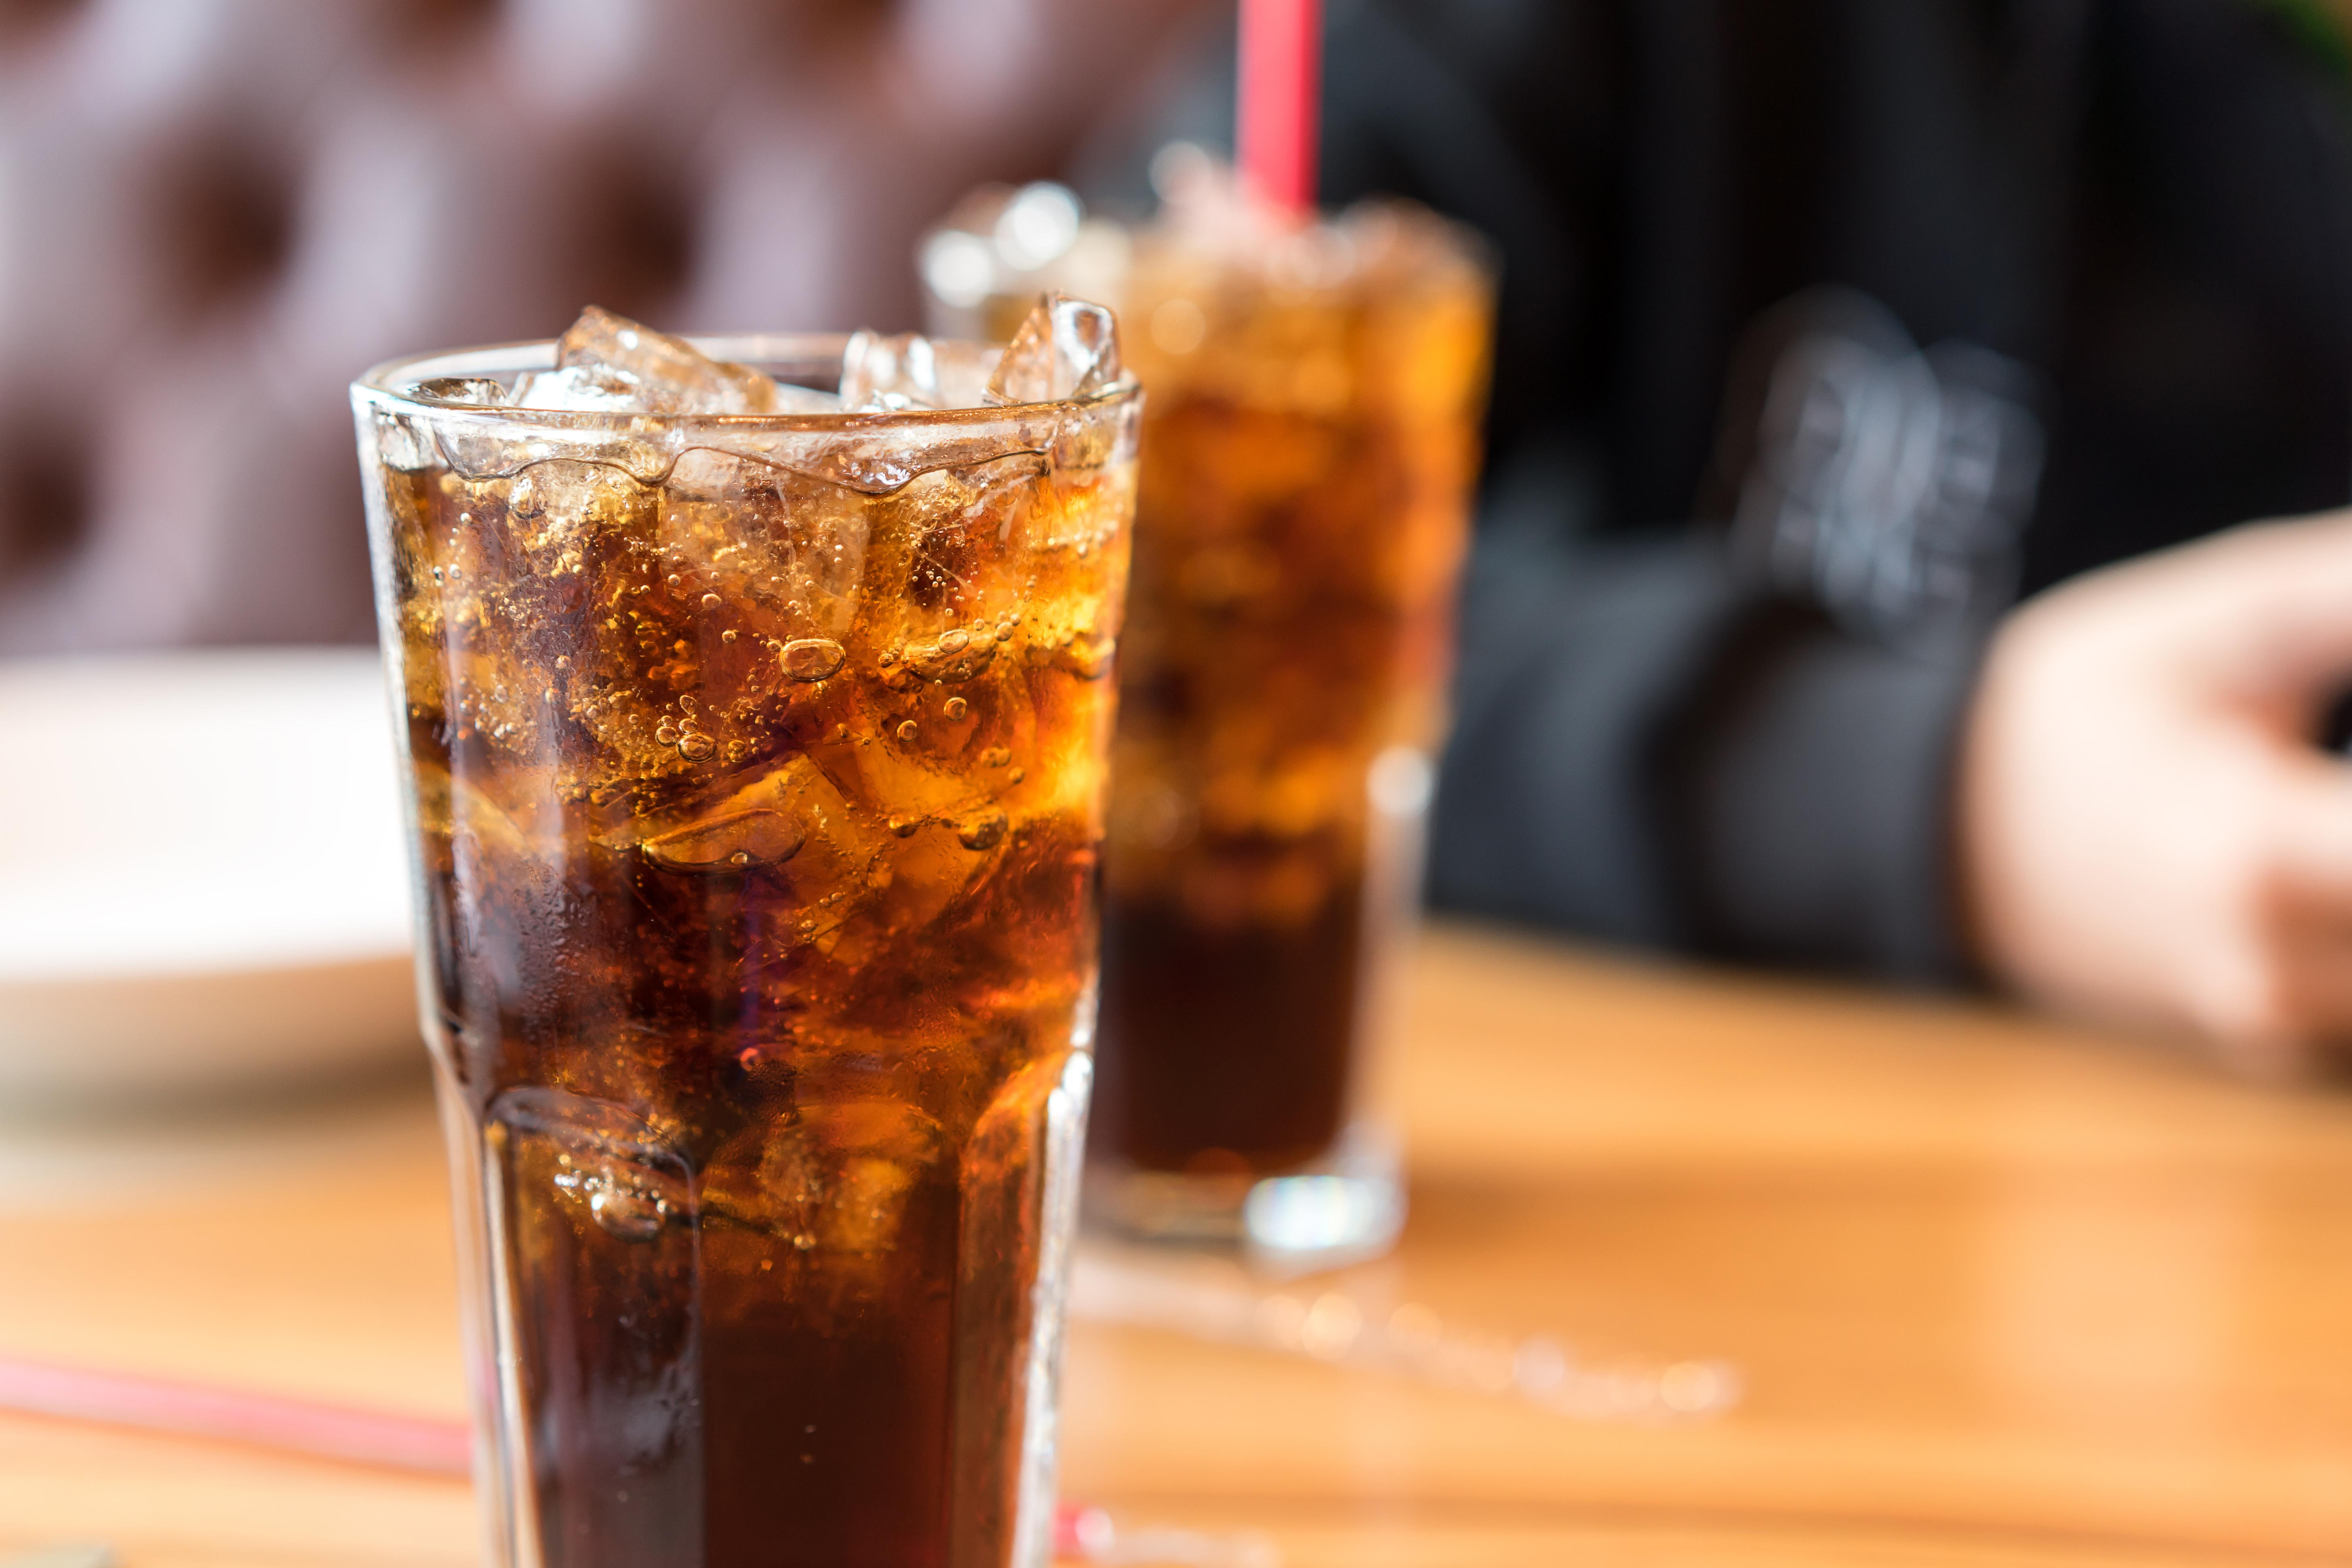 Experts Weigh In On Study Showing >> Sugary Drinks Linked To Breast Cancer In New Study Experts Weigh In